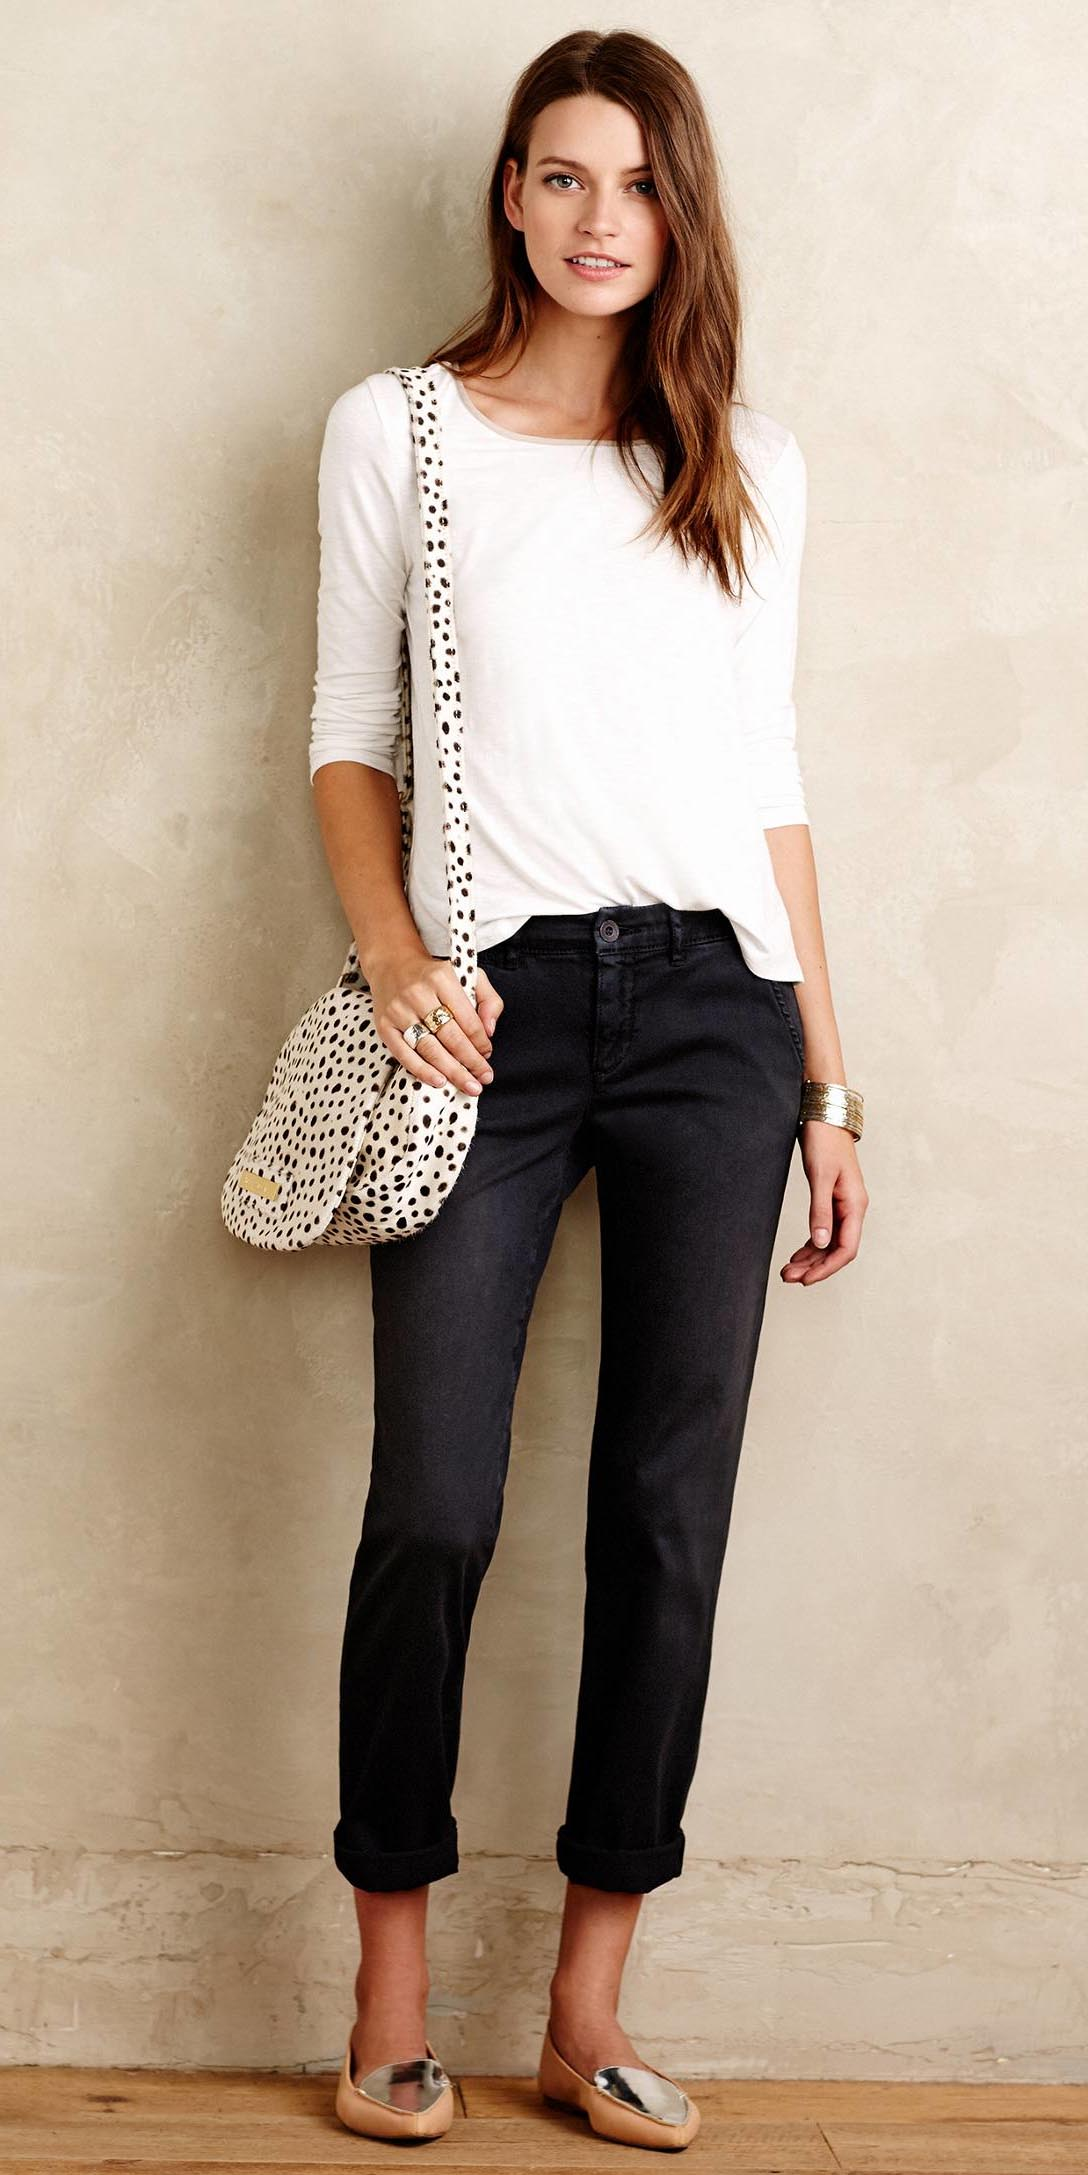 black-chino-pants-white-tee-white-bag-tan-shoe-loafers-spring-summer-hairr-weekend.jpeg